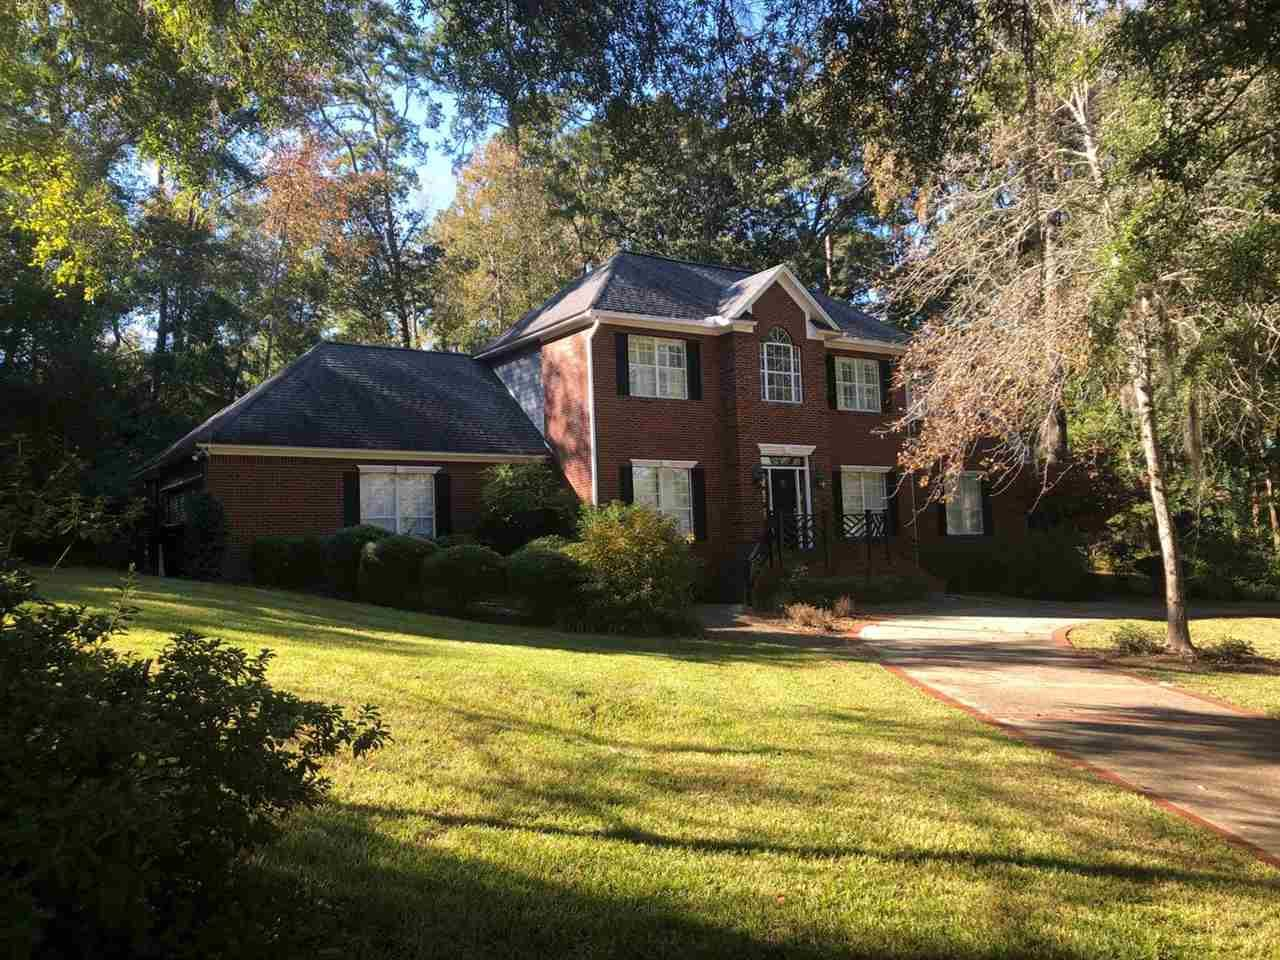 Photo for 3608 Donegal Drive, TALLAHASSEE, FL 32312 (MLS # 313262)